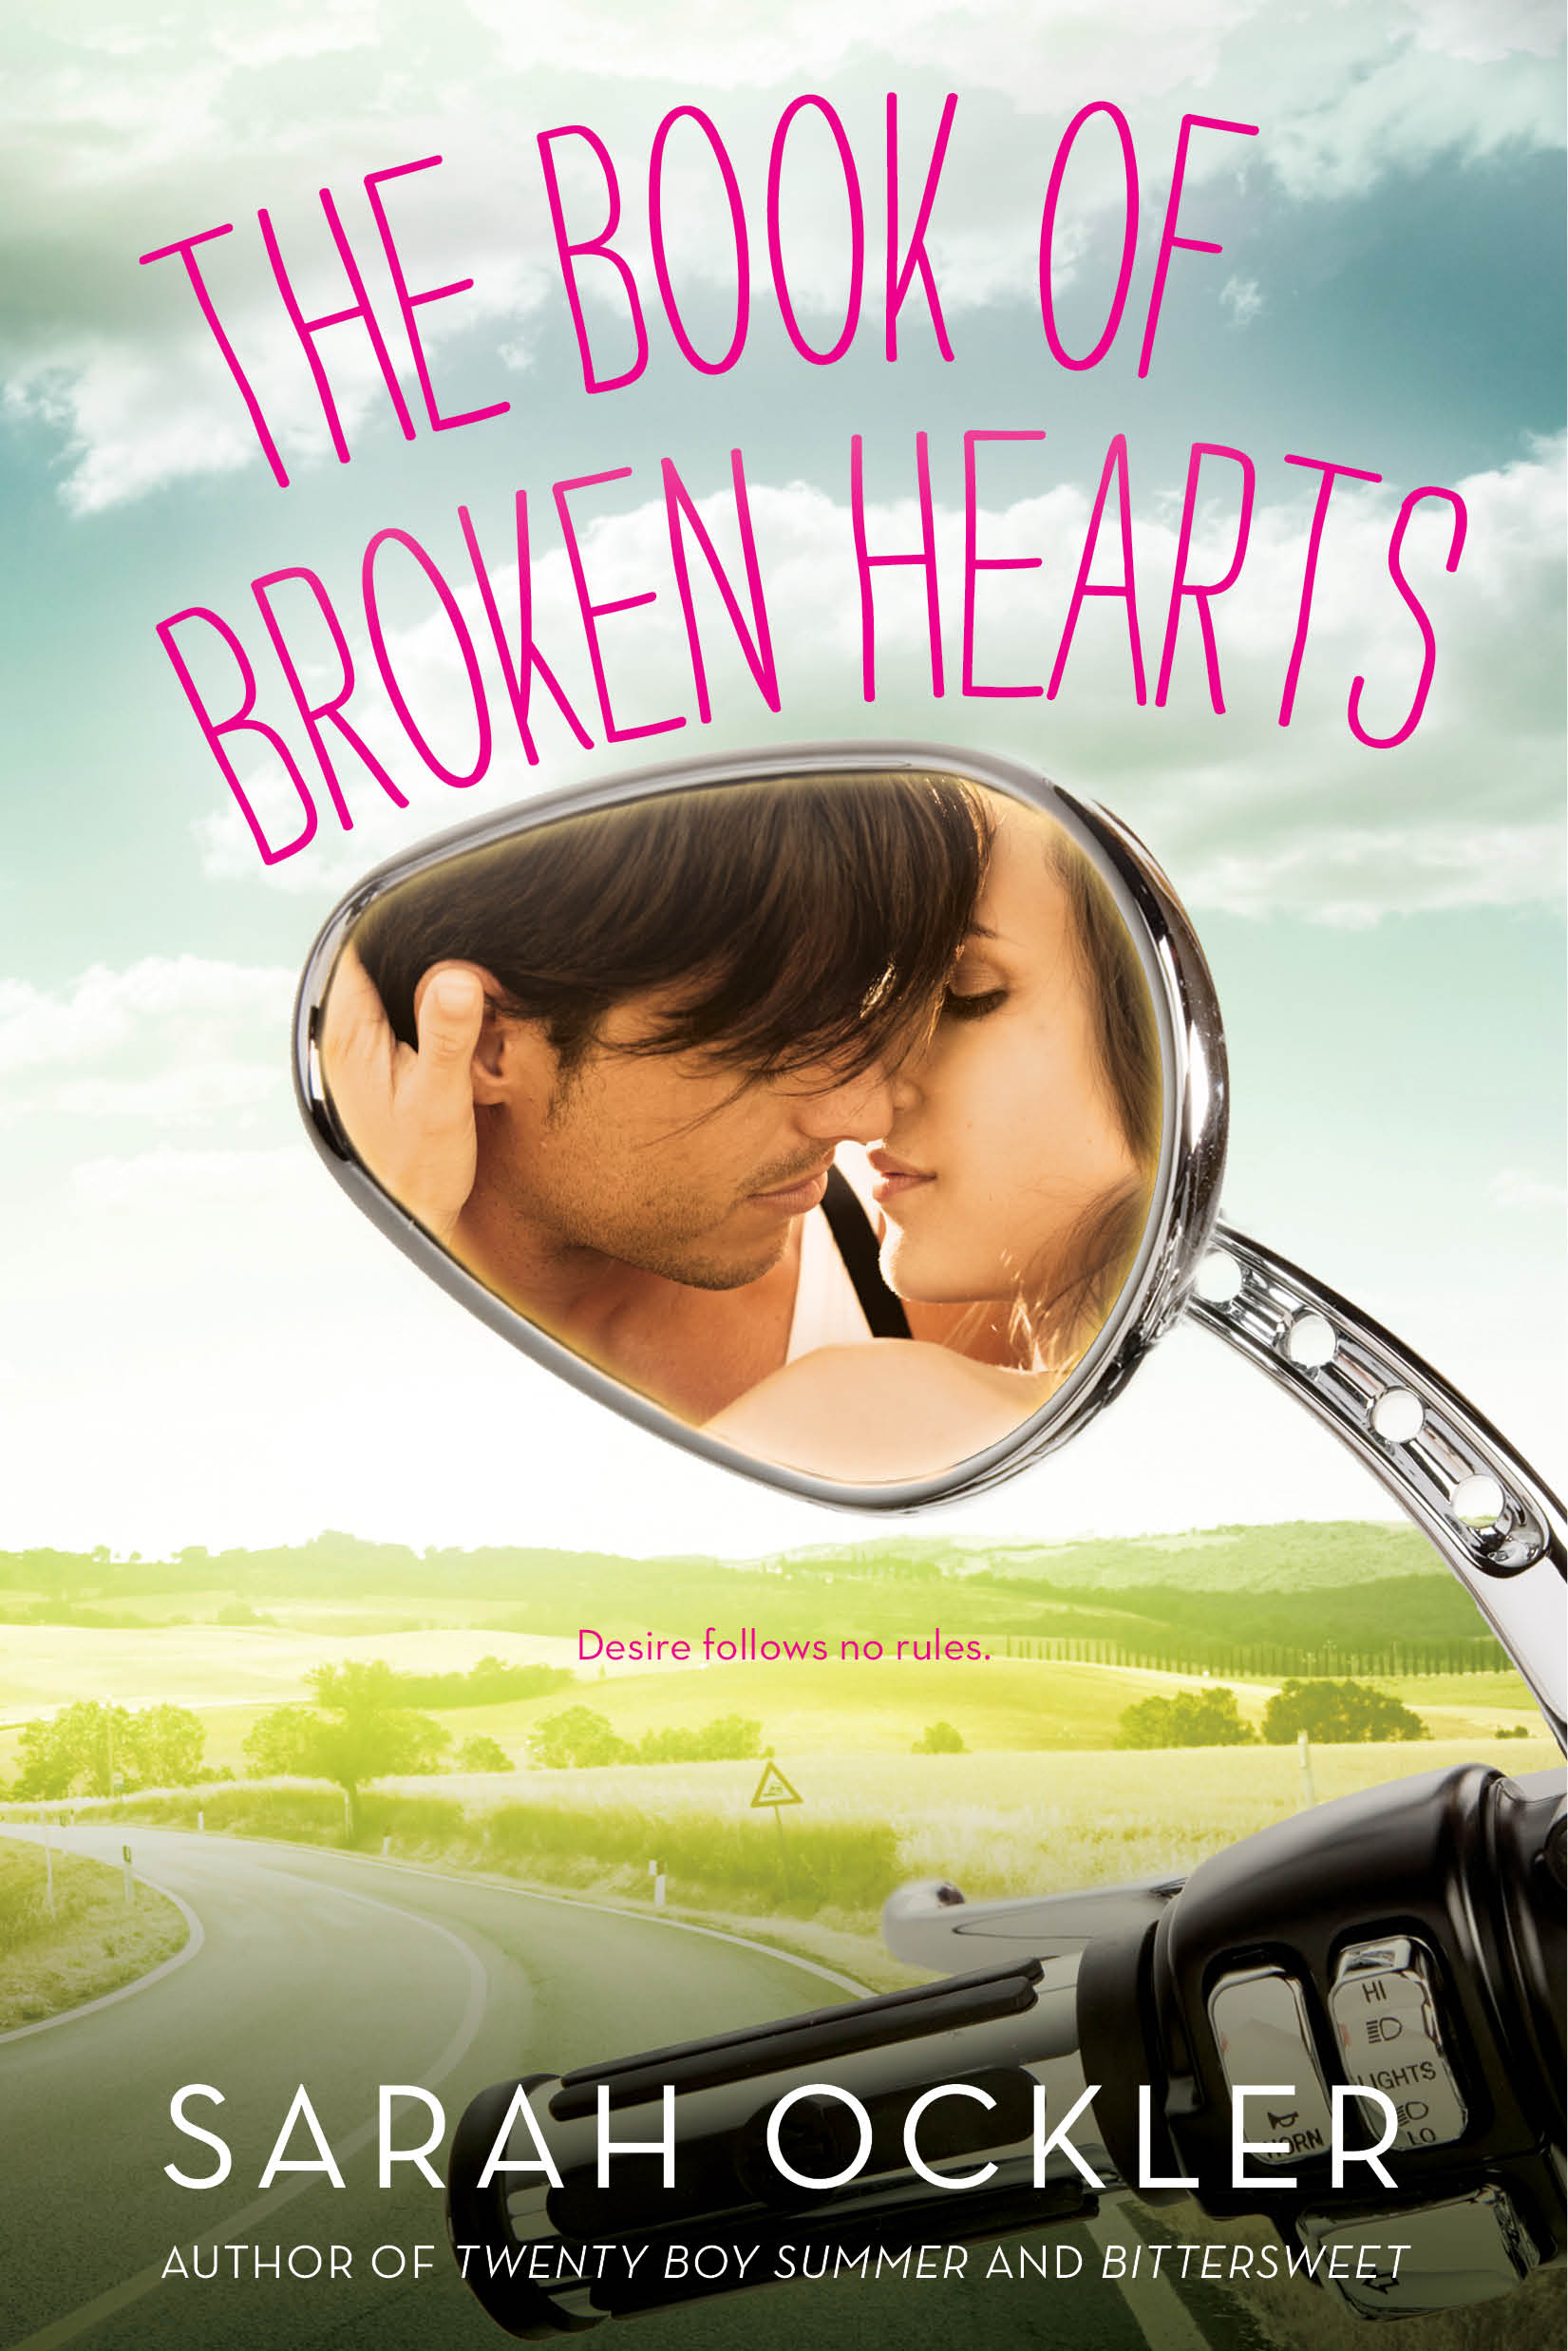 Book of broken hearts 9781442430396 hr